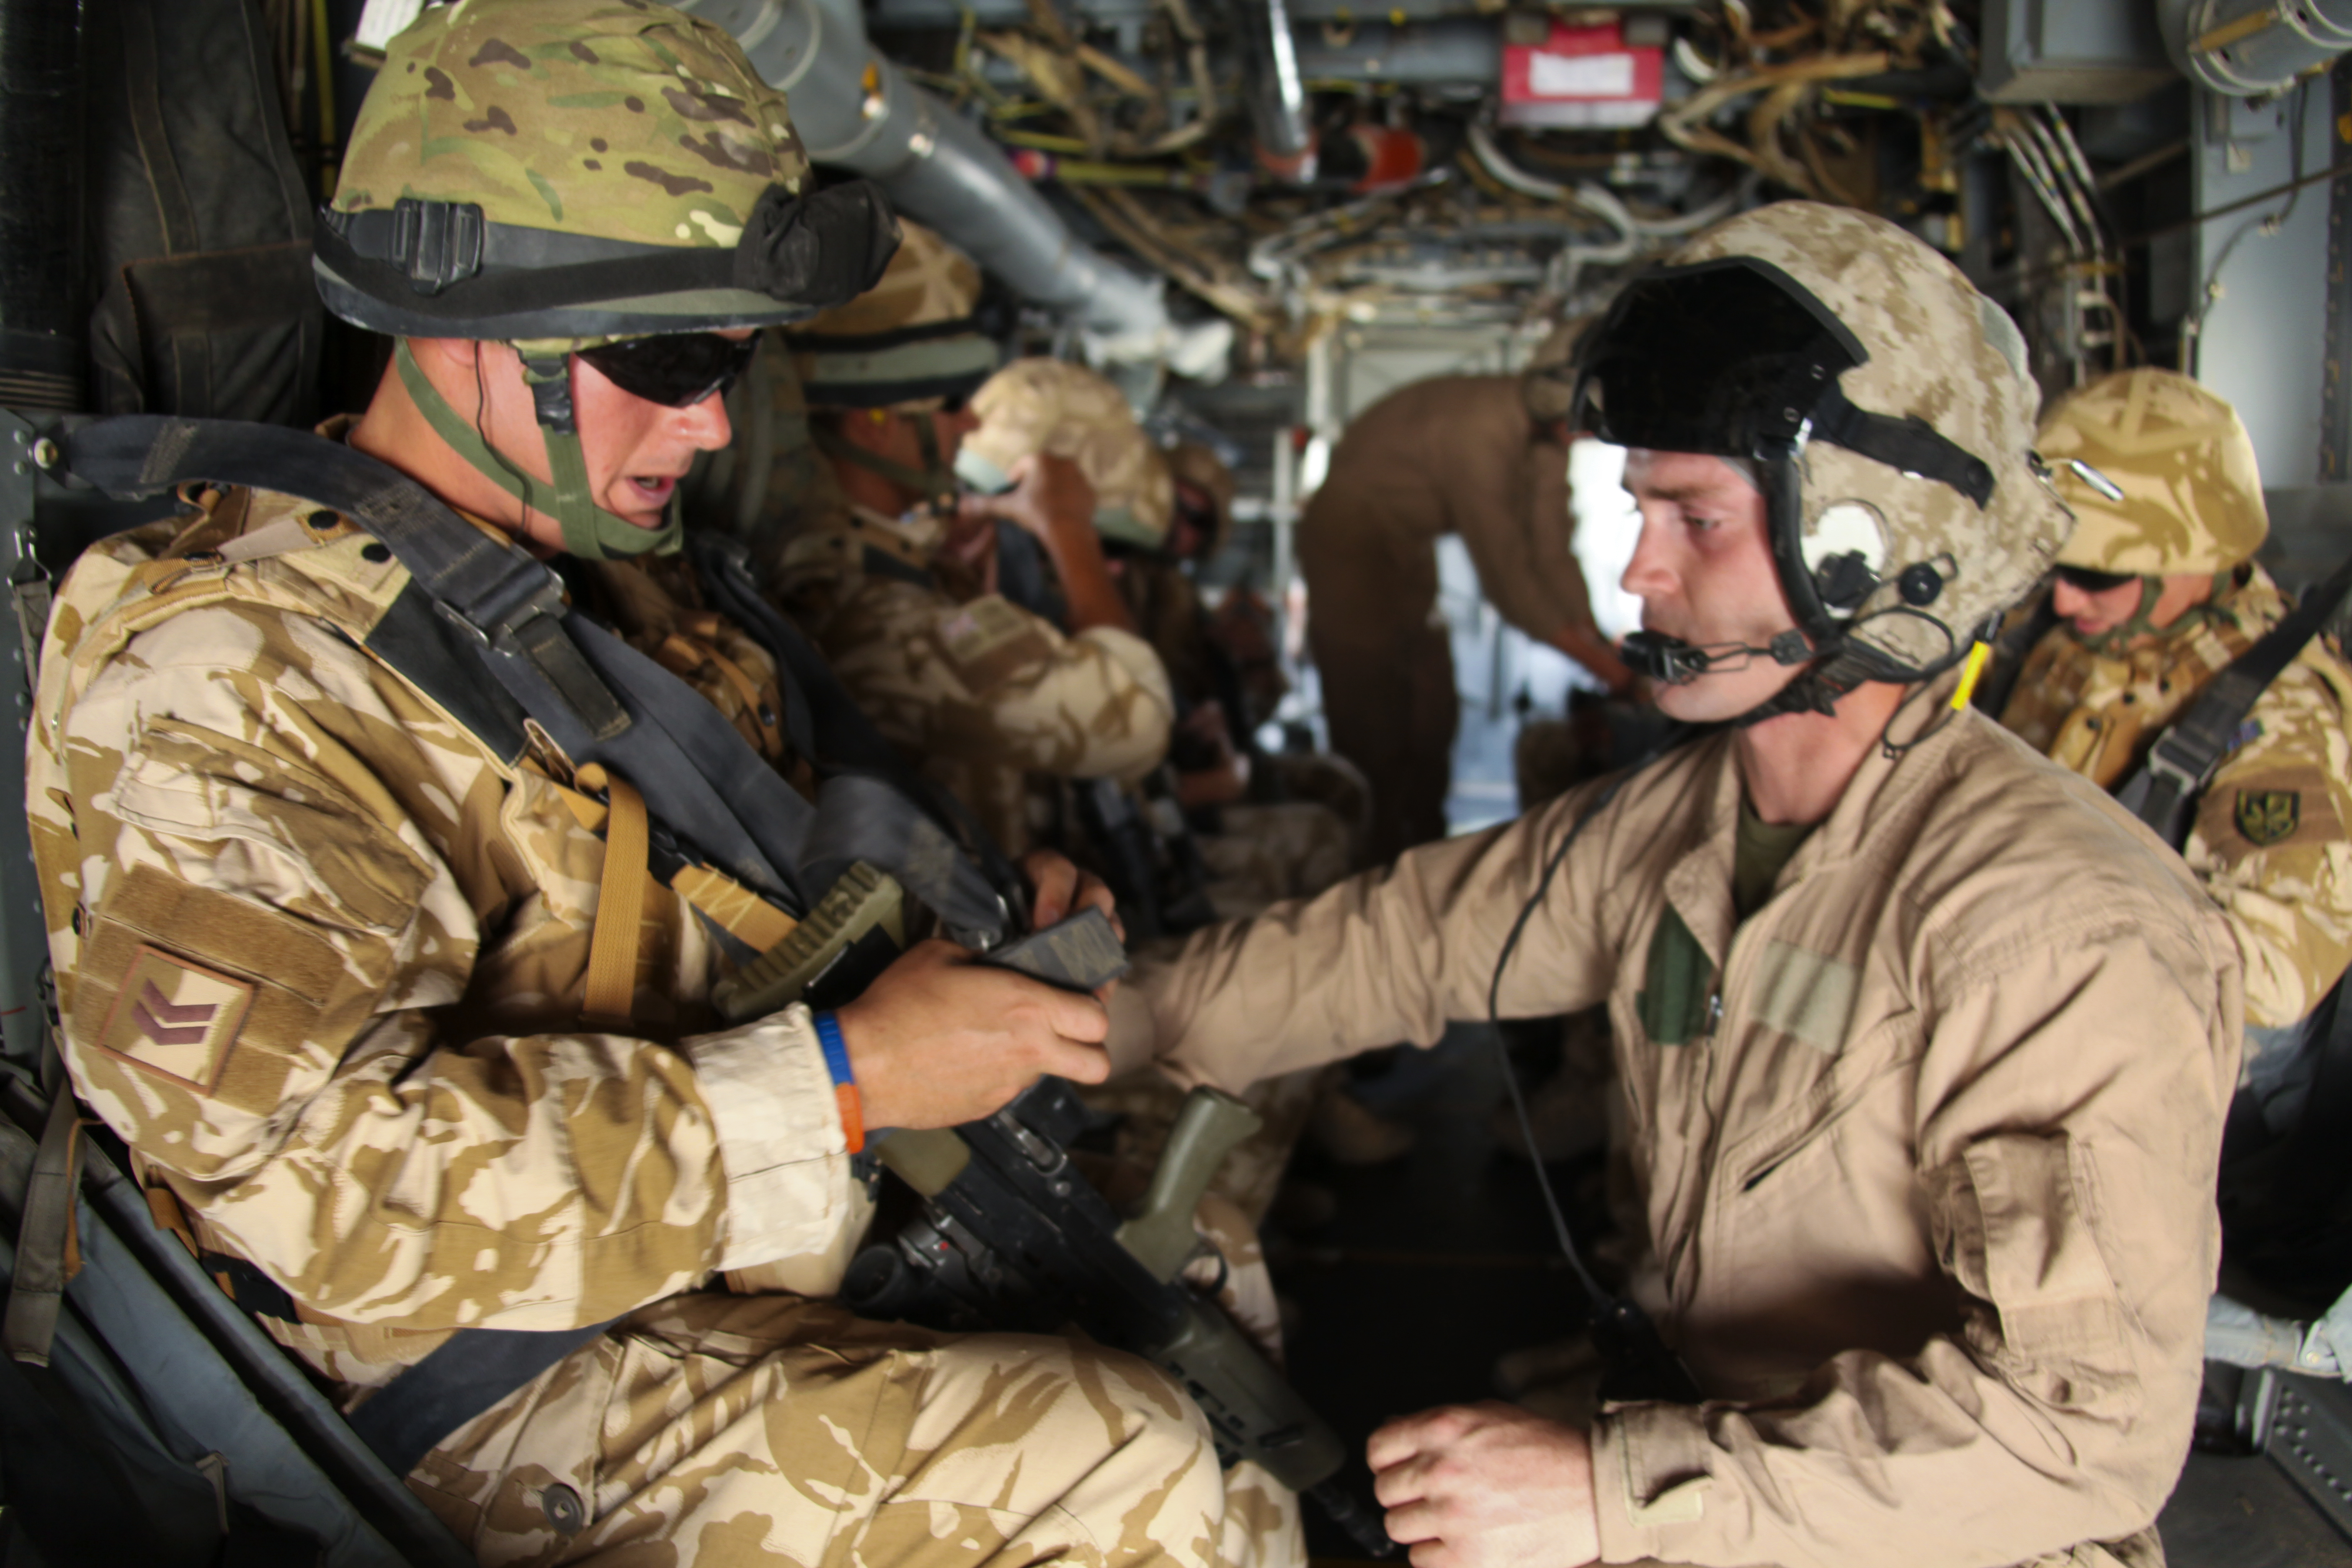 U.S., U.K. Aviation Partnership Thriving in Afghanistan (March 13, 2012)